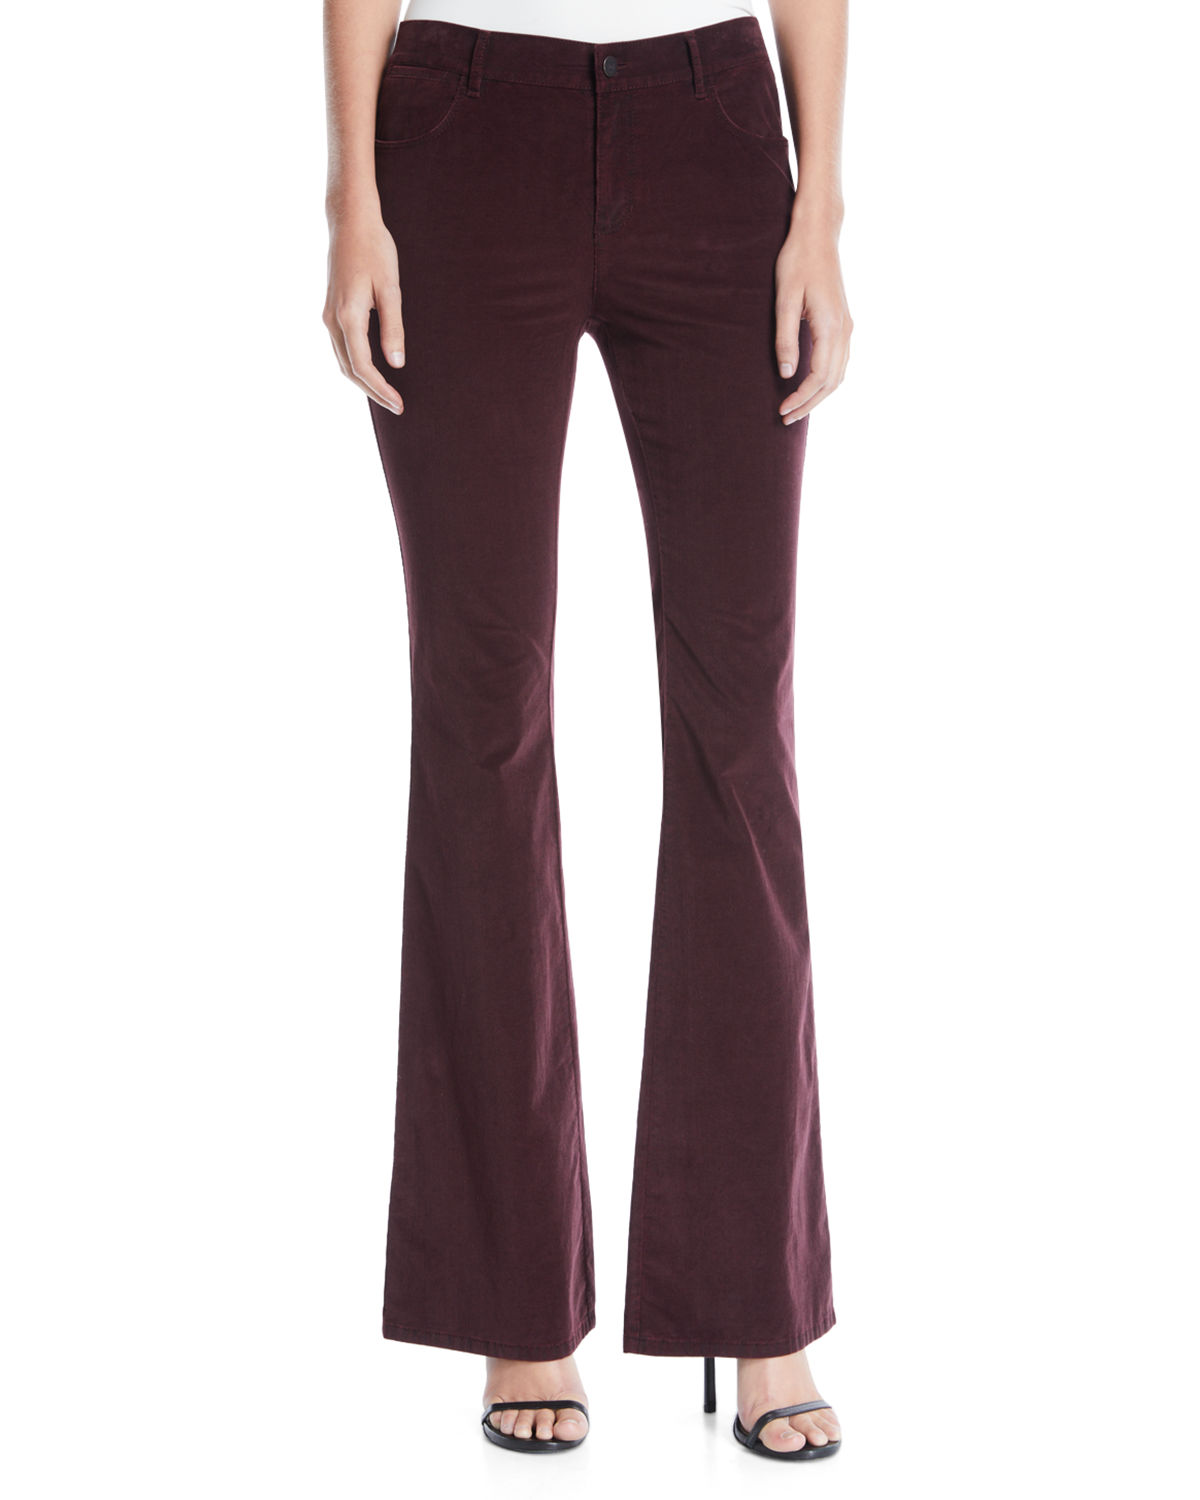 Lafayette 148 Pants MERCER CURATED CORDUROY FLARED PANTS